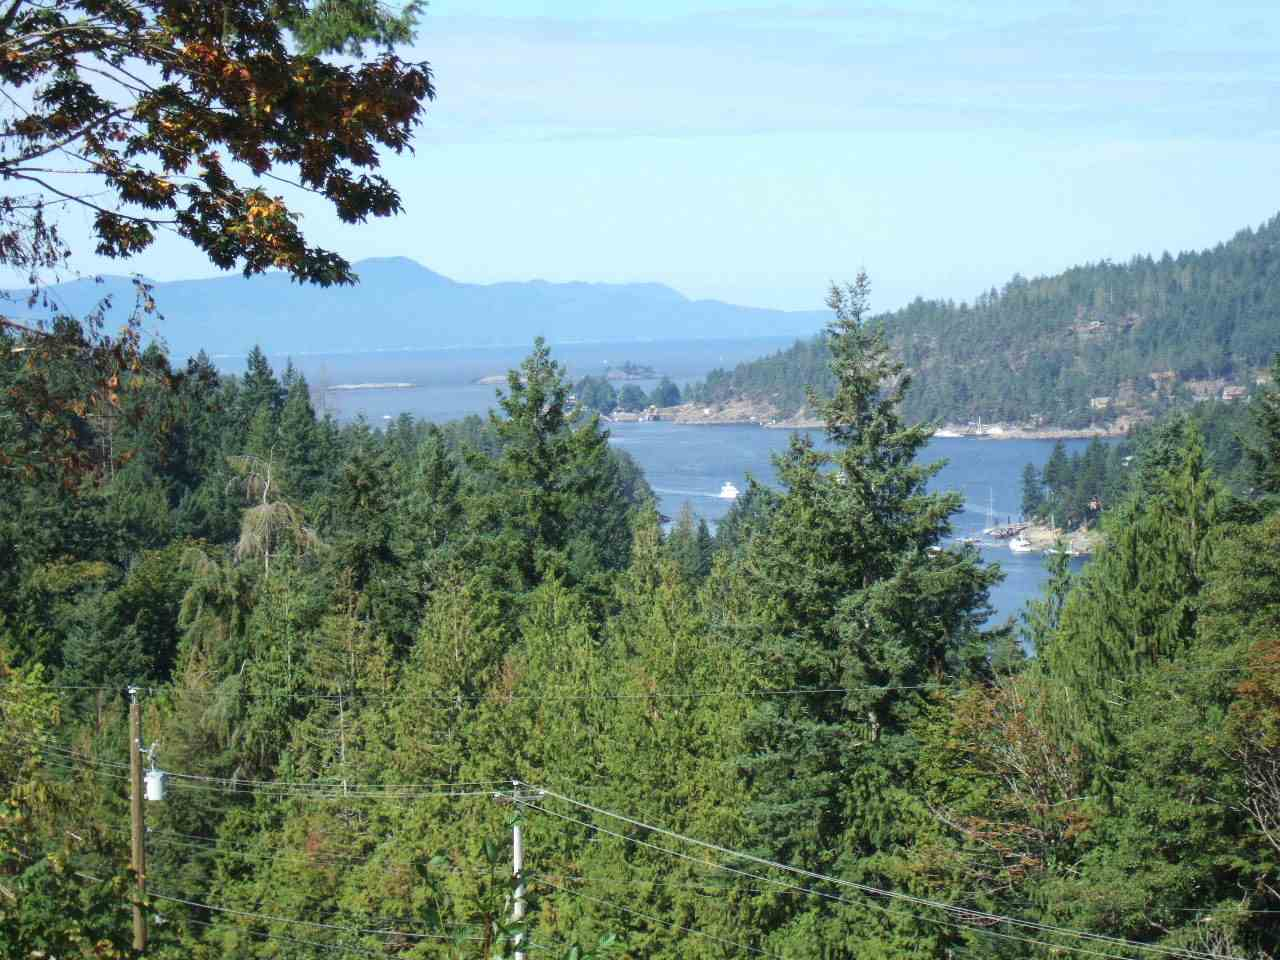 WESTERLY VIEWS of Pender Harbour & Straits - Residential Building LOT .54 acre. Located in the heart of Madeira Park Village. Minutes to shopping & amenities, including moorage & public boat ramp. Excellent recreation choices include hiking, boating/fishing, golfing. Freehold (fee simple) title means no Strata Fees or Rules. GST applicable on Purchase Price.